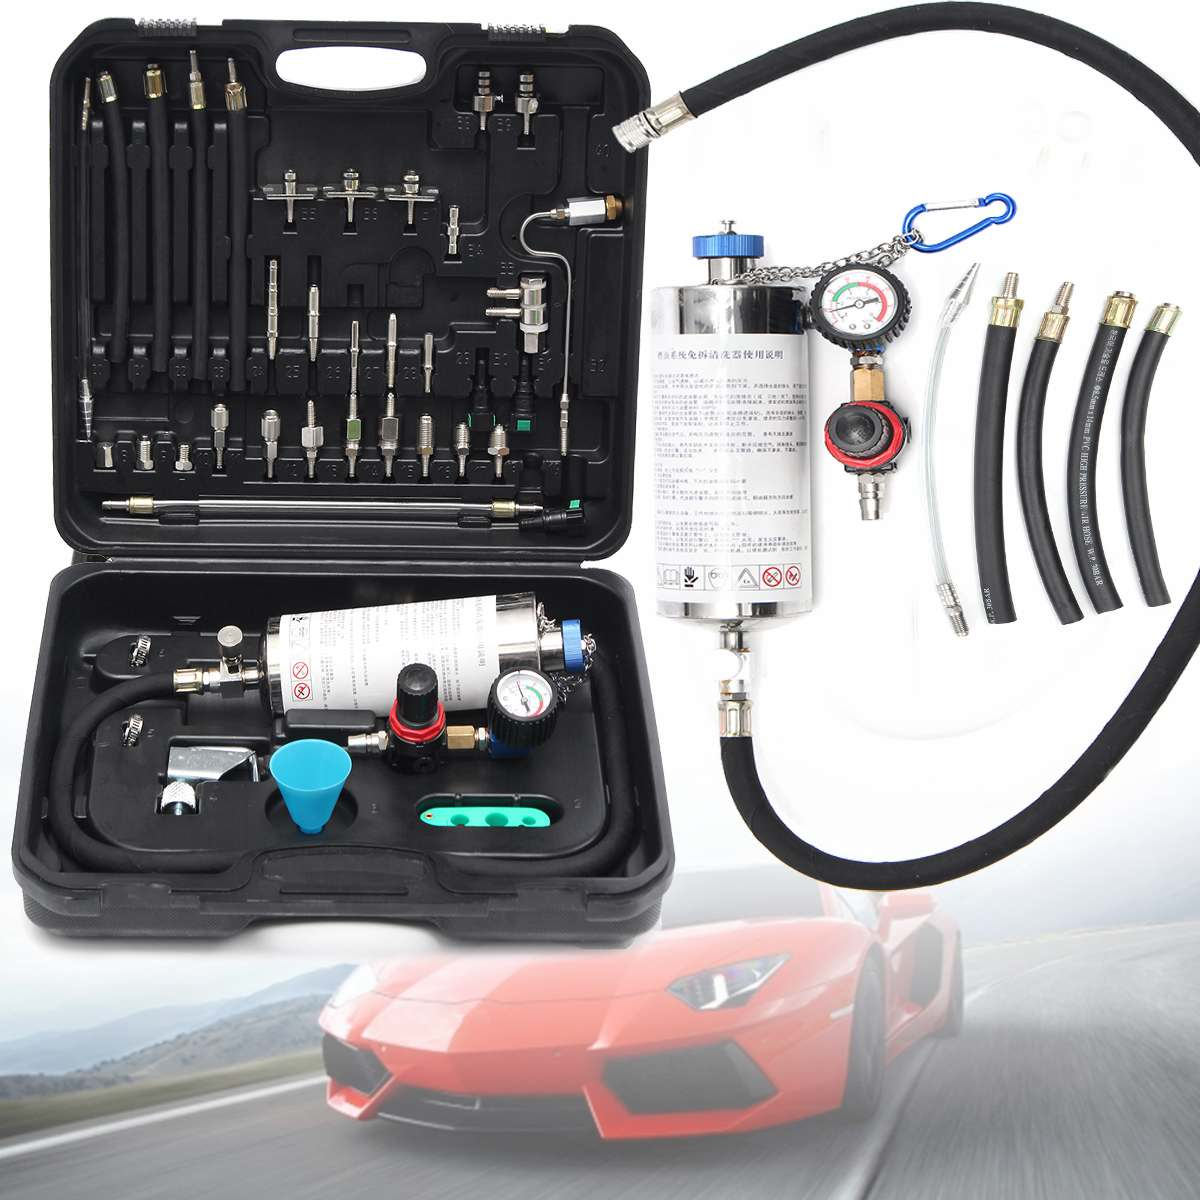 Universal Automotive Non-Dismantle Fuel System Cleaner Auto gasonline Injector Clean tool For Petrol Cars image